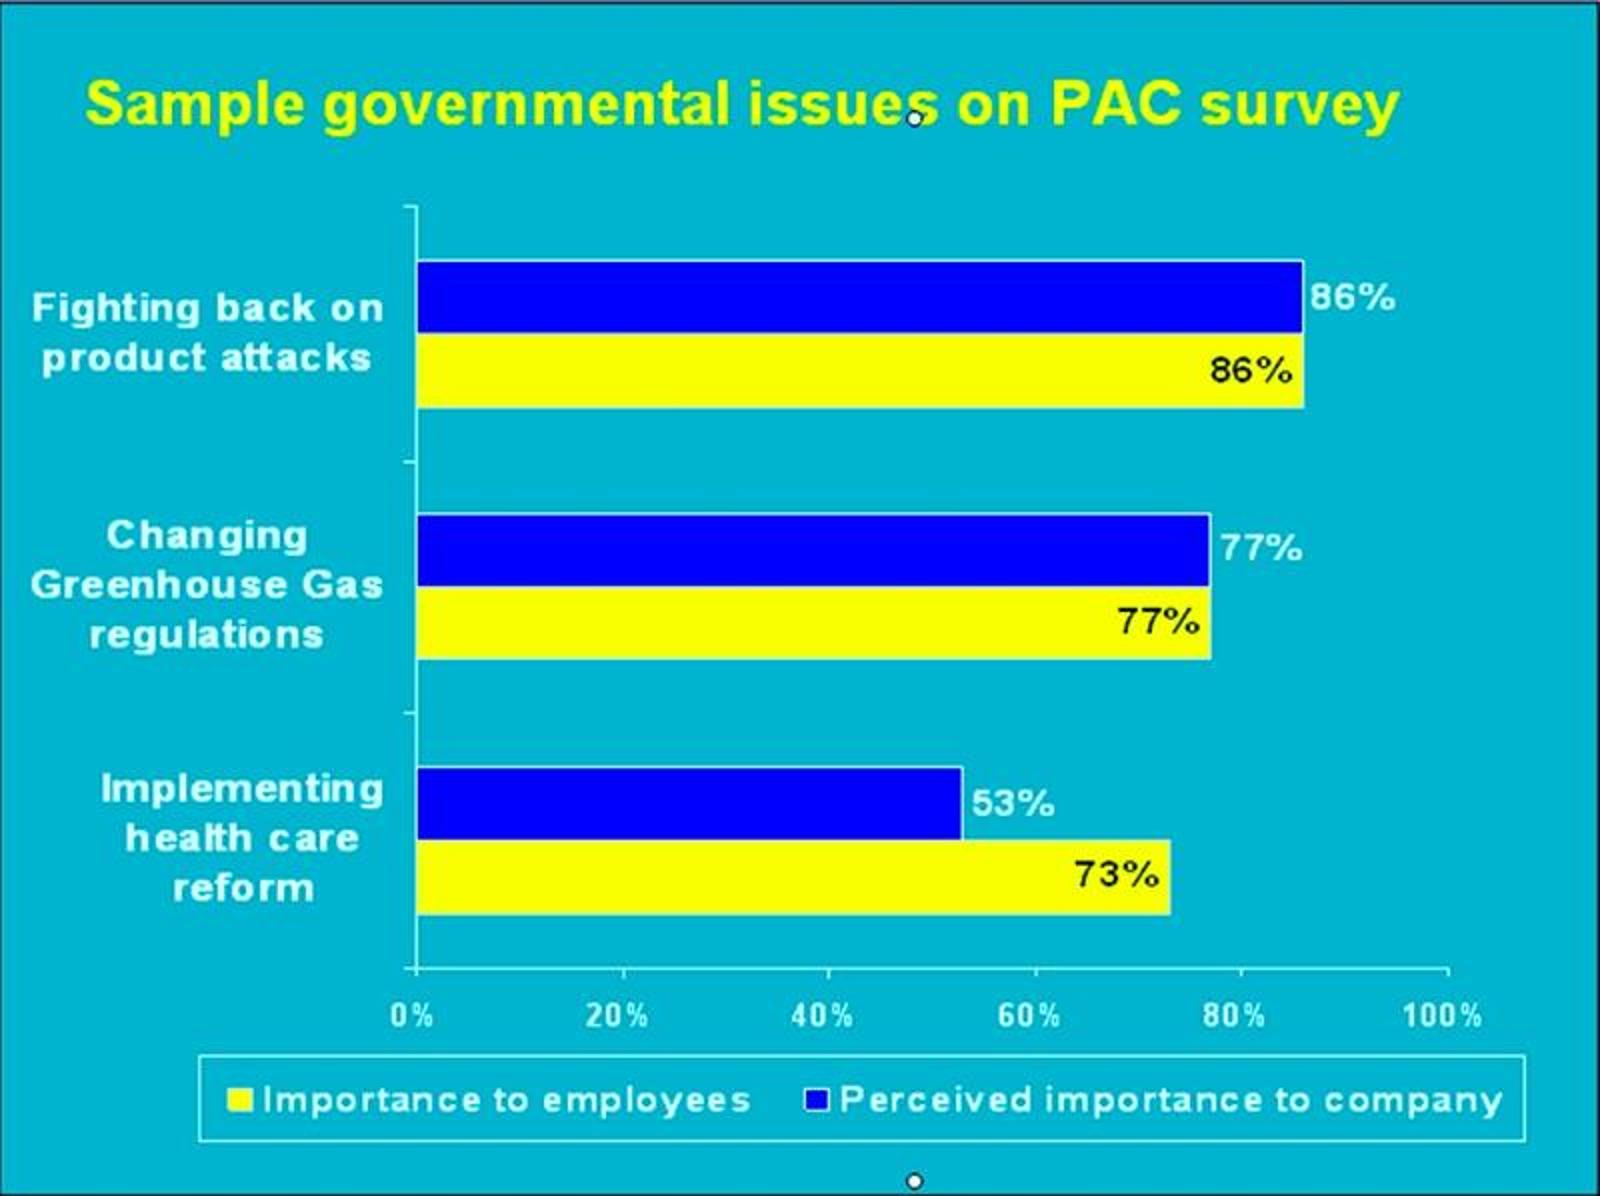 Sample issues on PAC survey